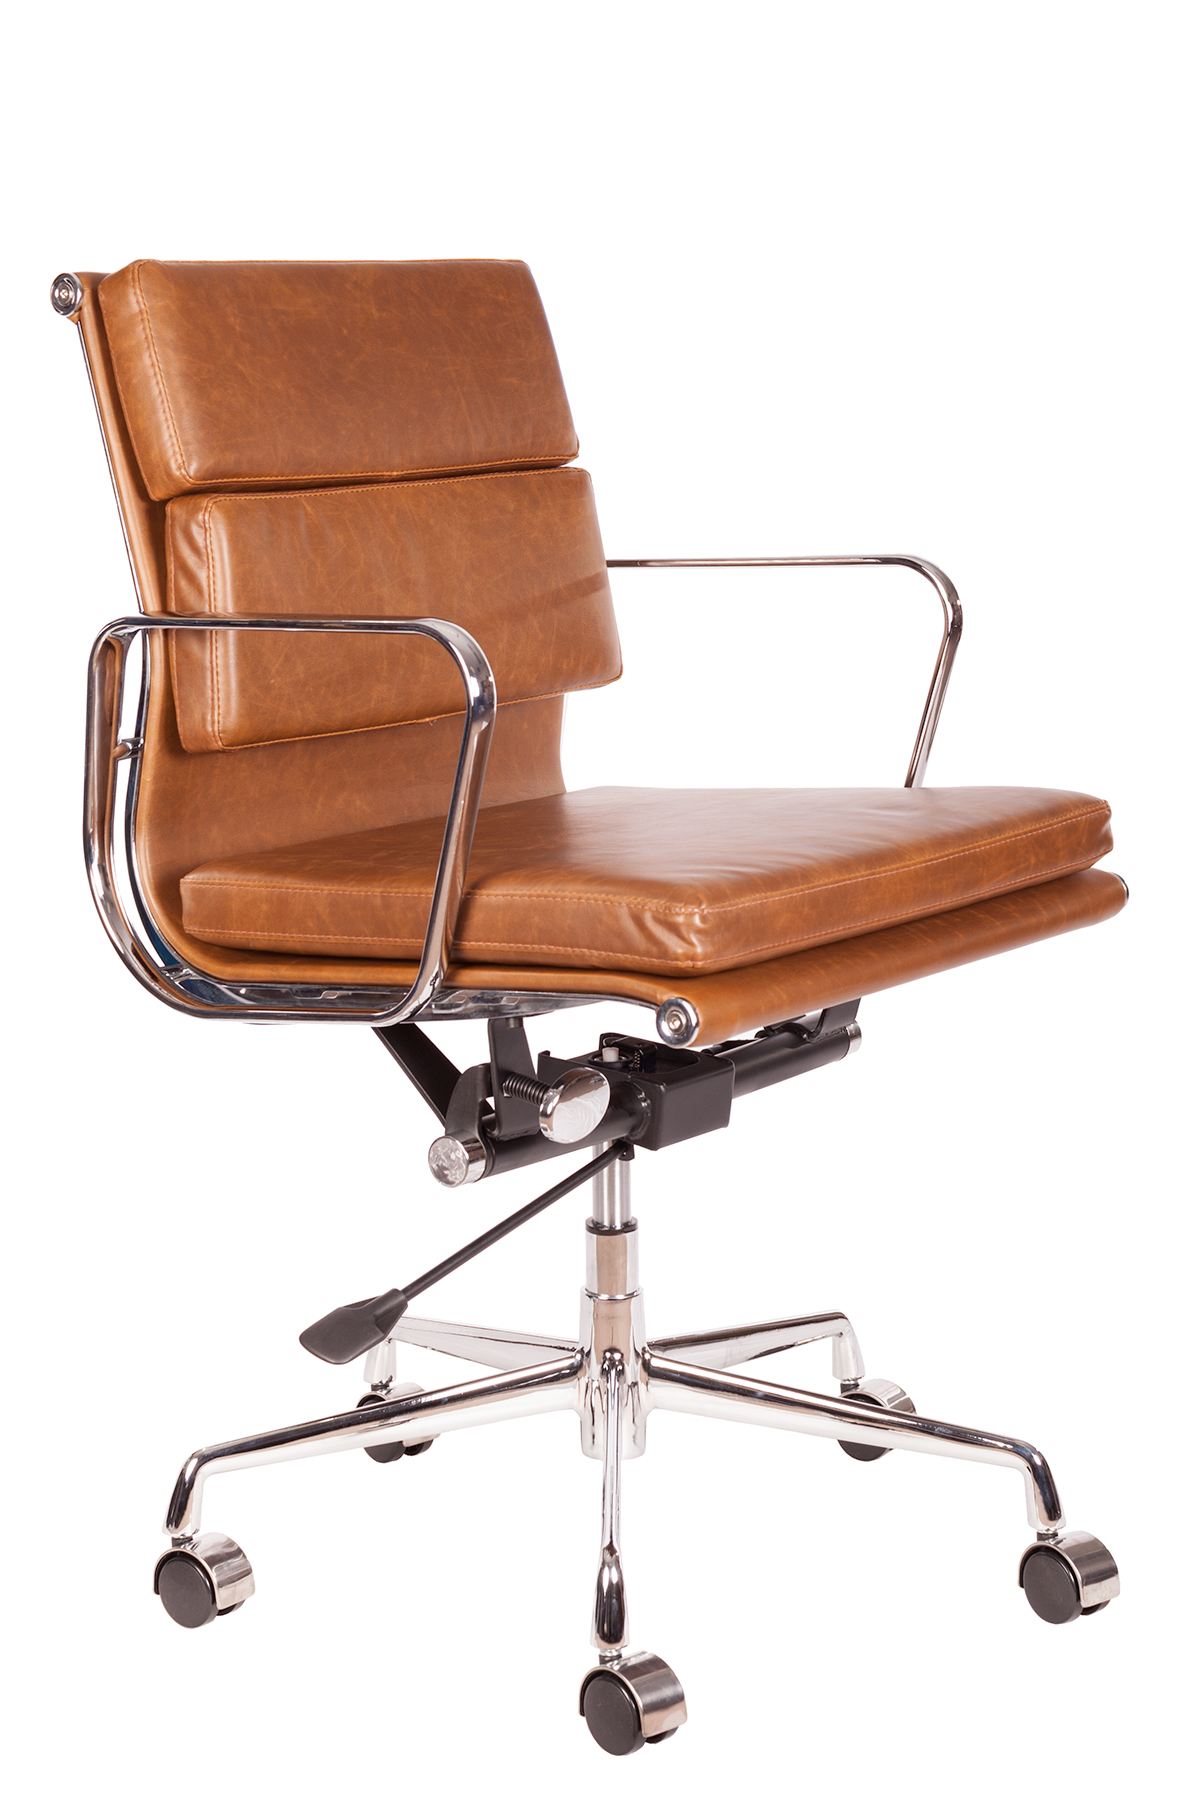 Details About Vintage Brown Leather Soft Pad Office Desk Chair Swivel Aluminium Frame Low Back